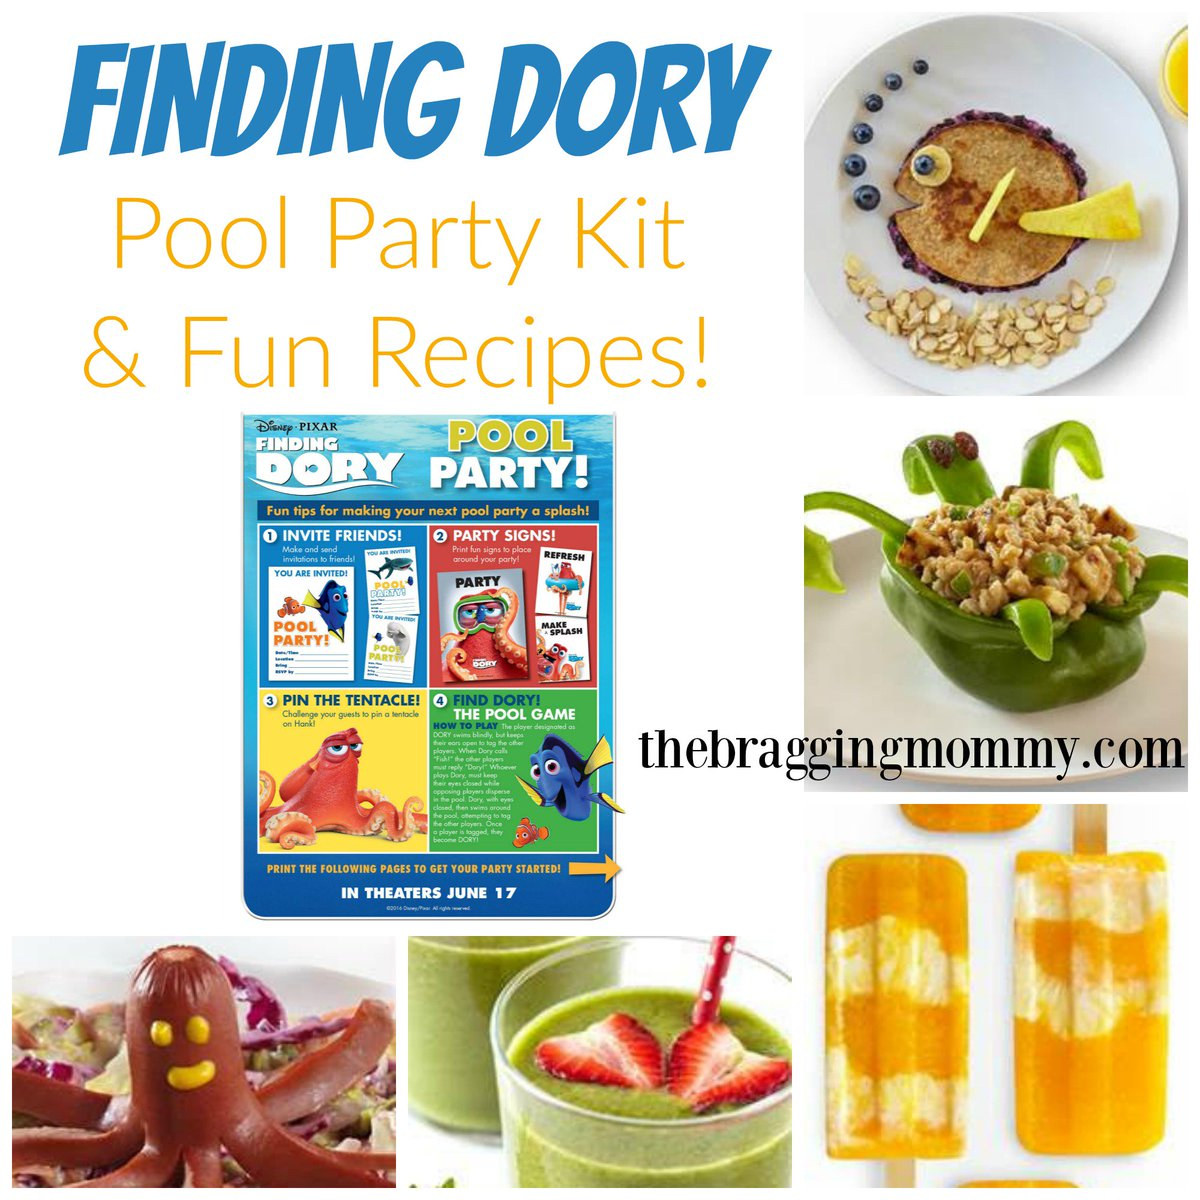 Super fun #FindingDory themed recipes & Pool Party Kit! https://t.co/X4Uv5Ymhth #FindingDoryEvent #HaveYouSeenHer? https://t.co/VHXMz9T5cW